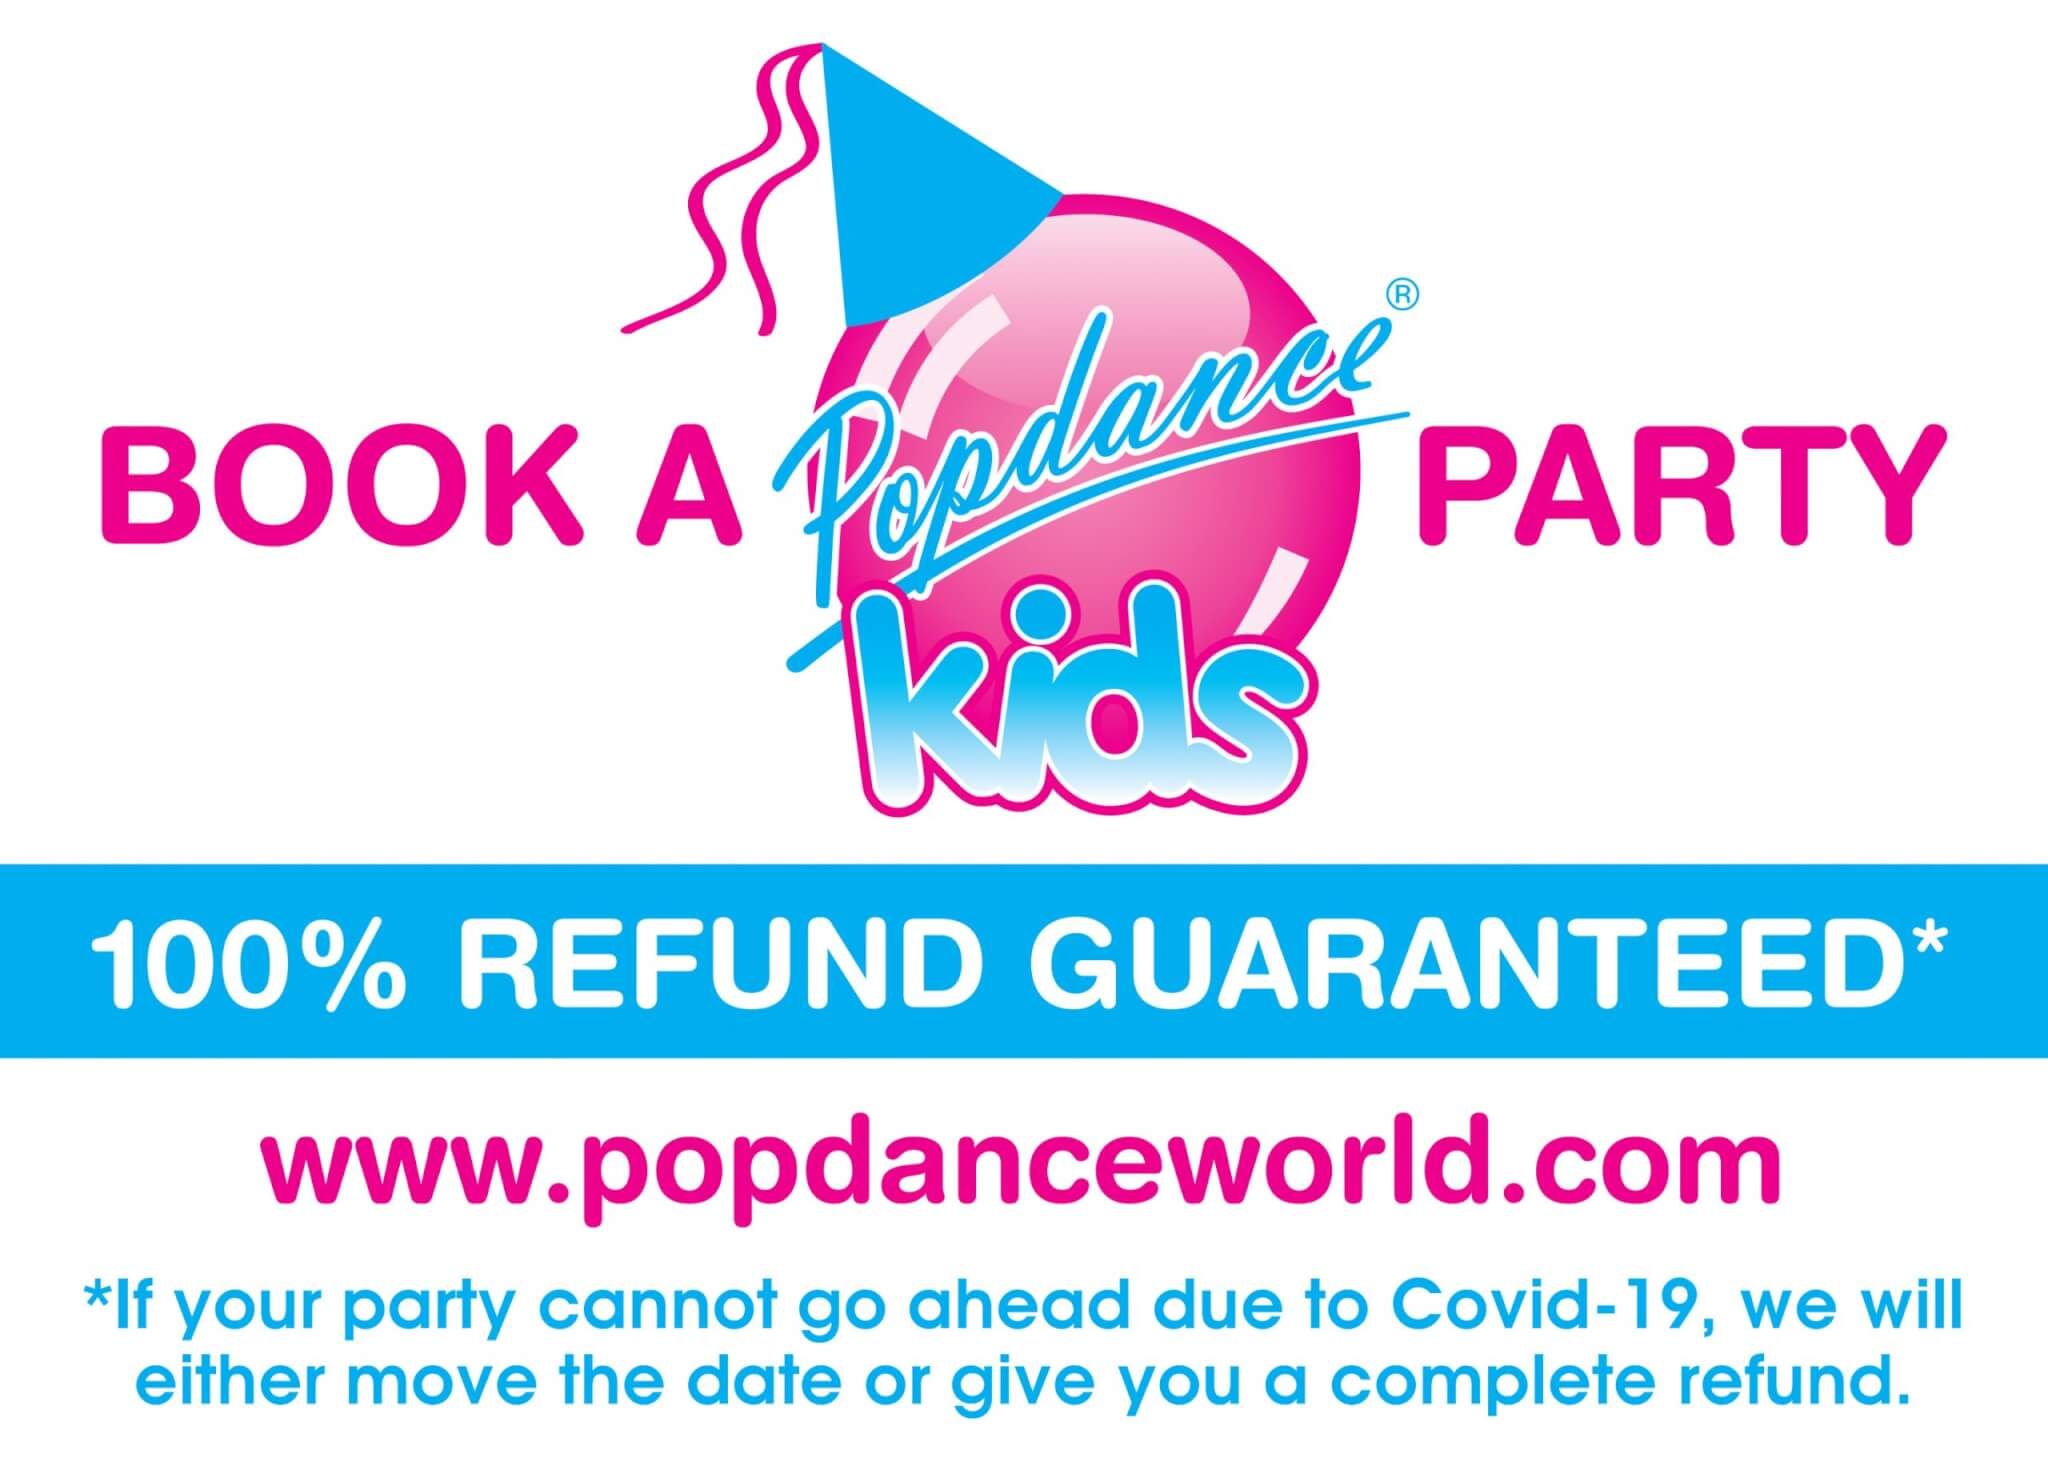 Popdance are now taking bookings for Parties and Workshops